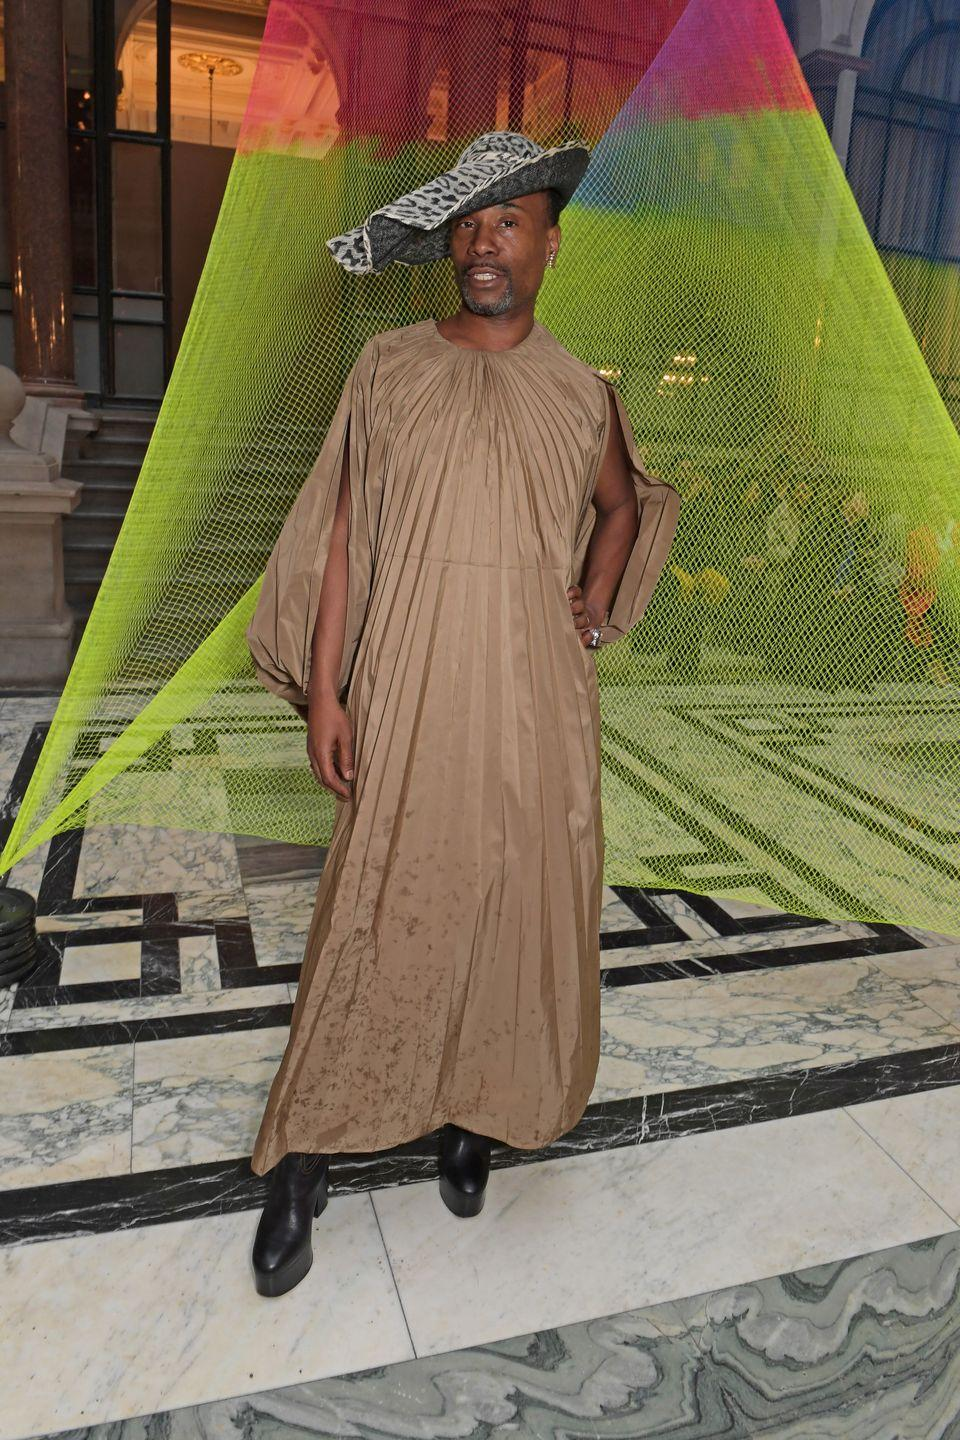 <p>The Like A Boss actor turned up at the British Foreign and Commonwealth Office for the Roksanda show wearing a coffee-coloured pleated maxi dress with exaggerated sleeves and a printed black and white wide-brimmed hat. </p>